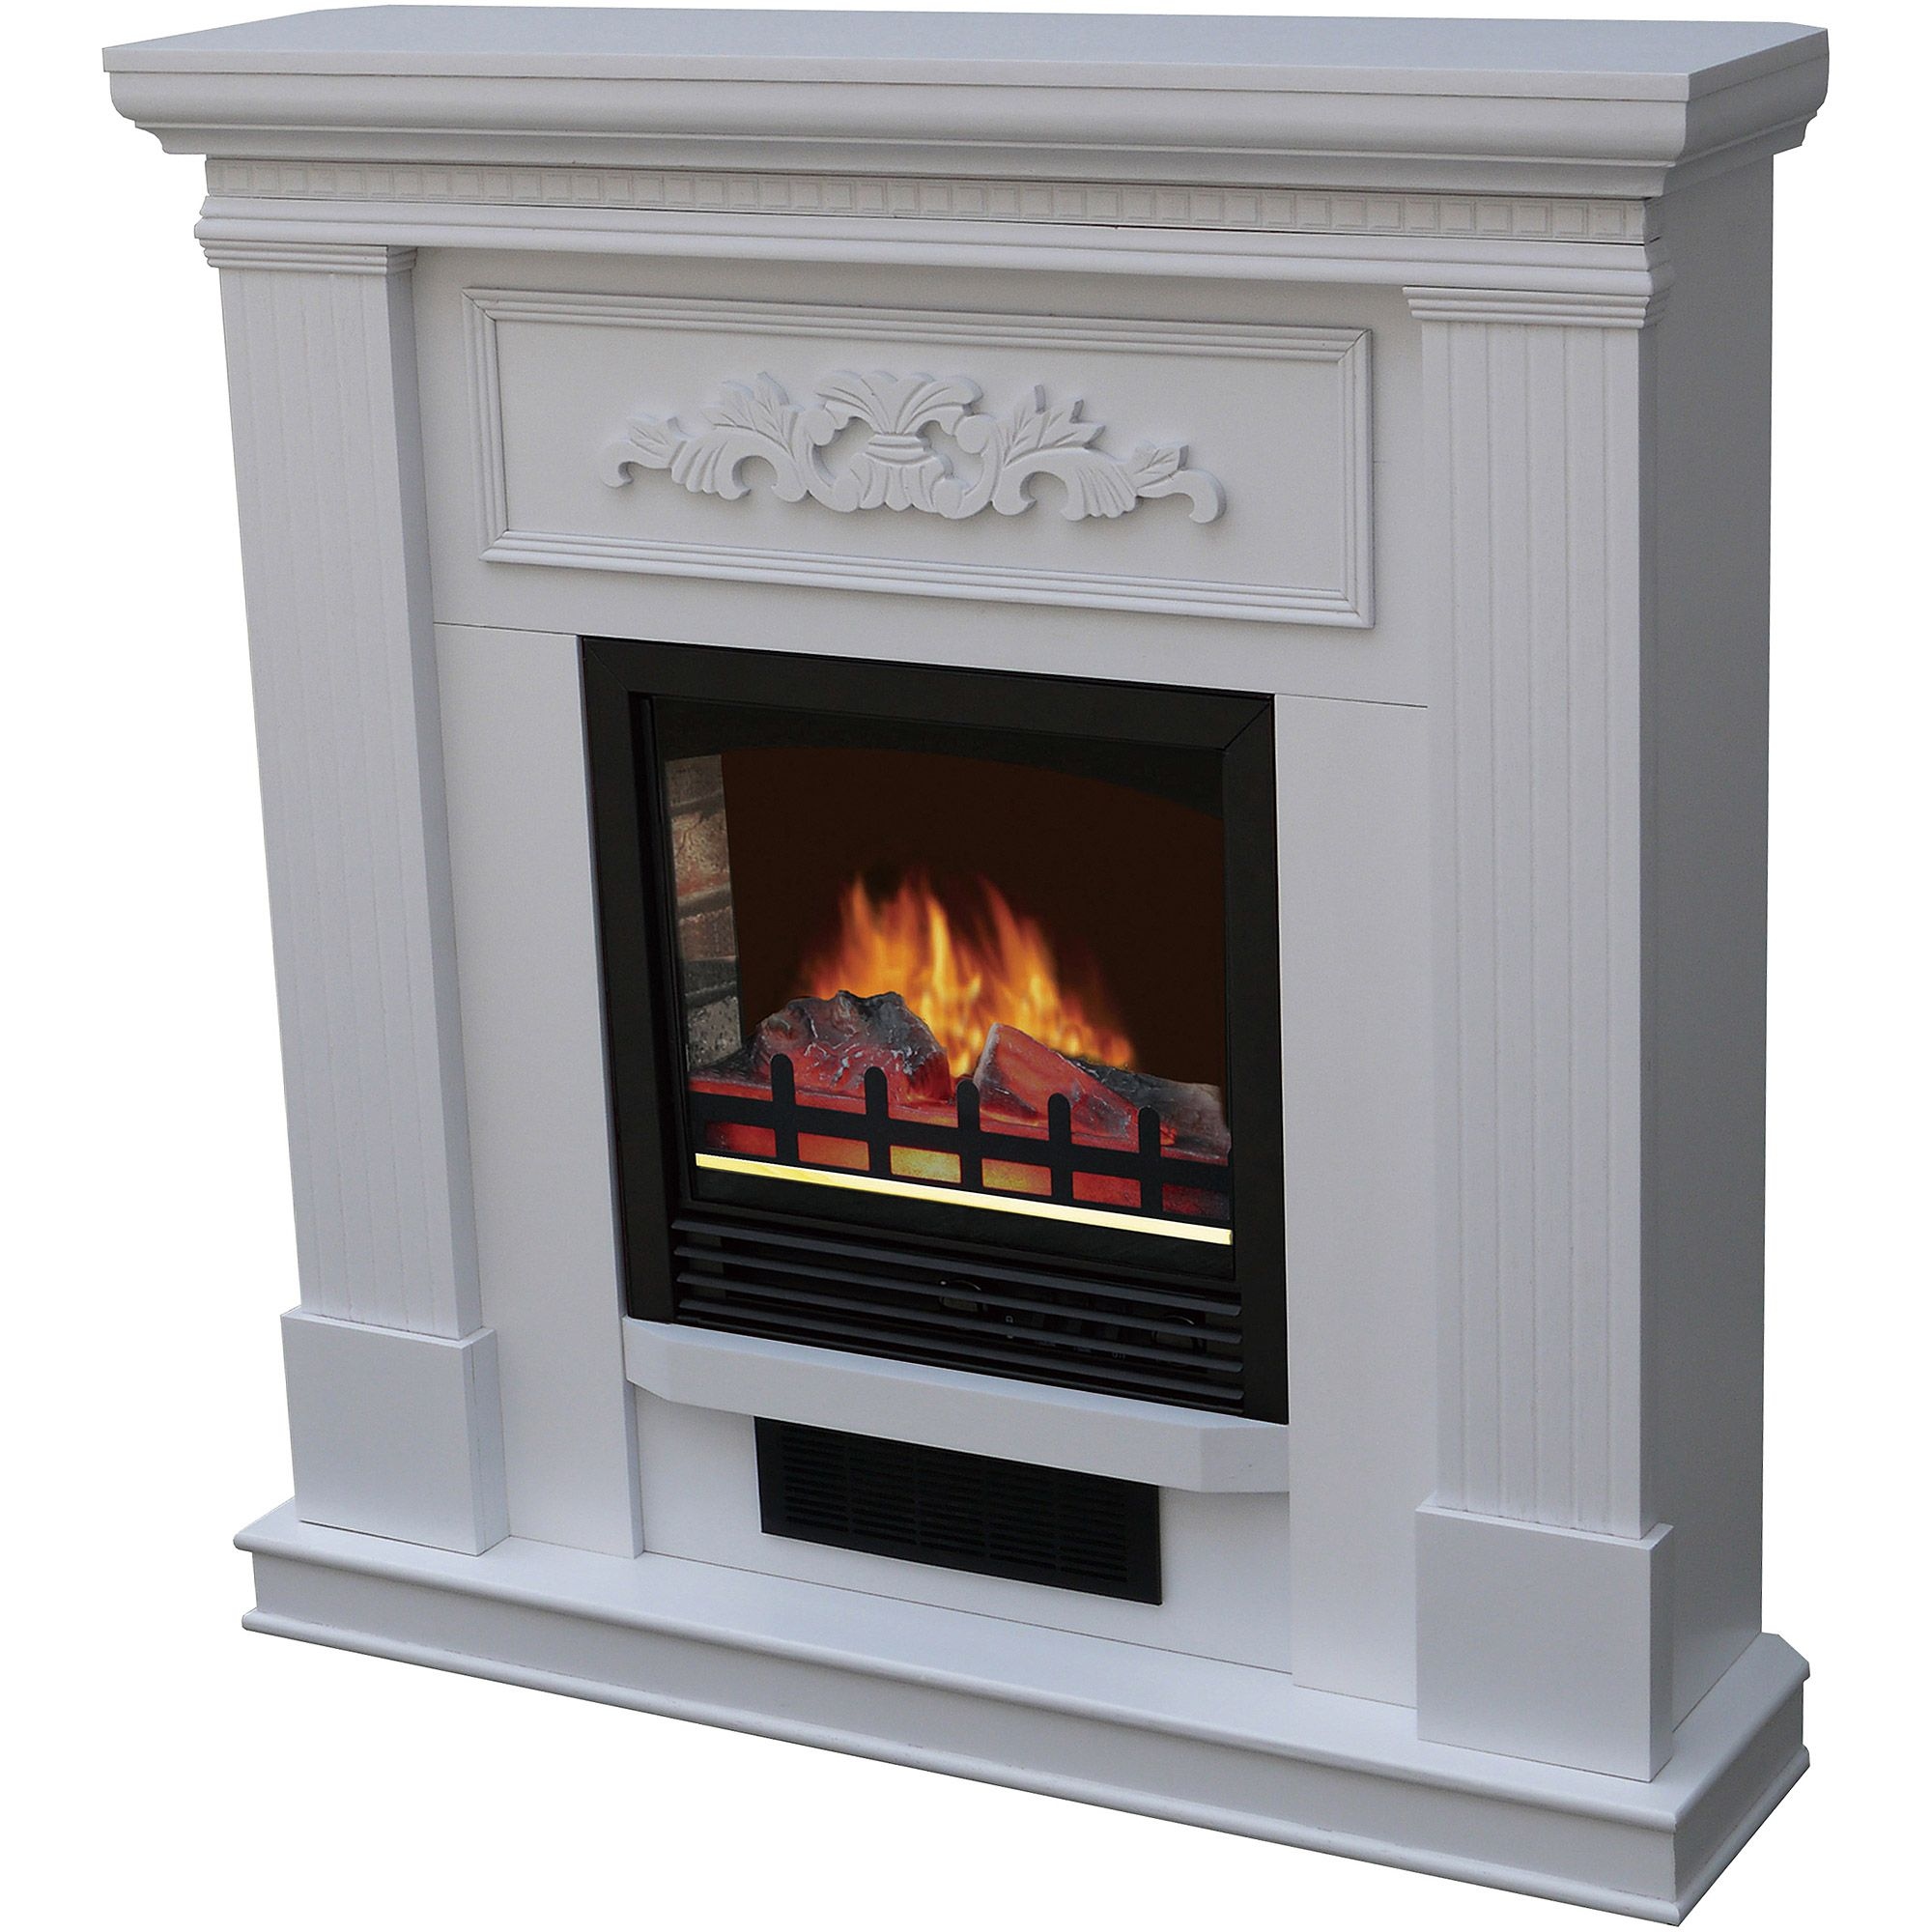 Electric Fireplaces For Sale At Walmart Electric Fireplace With 38